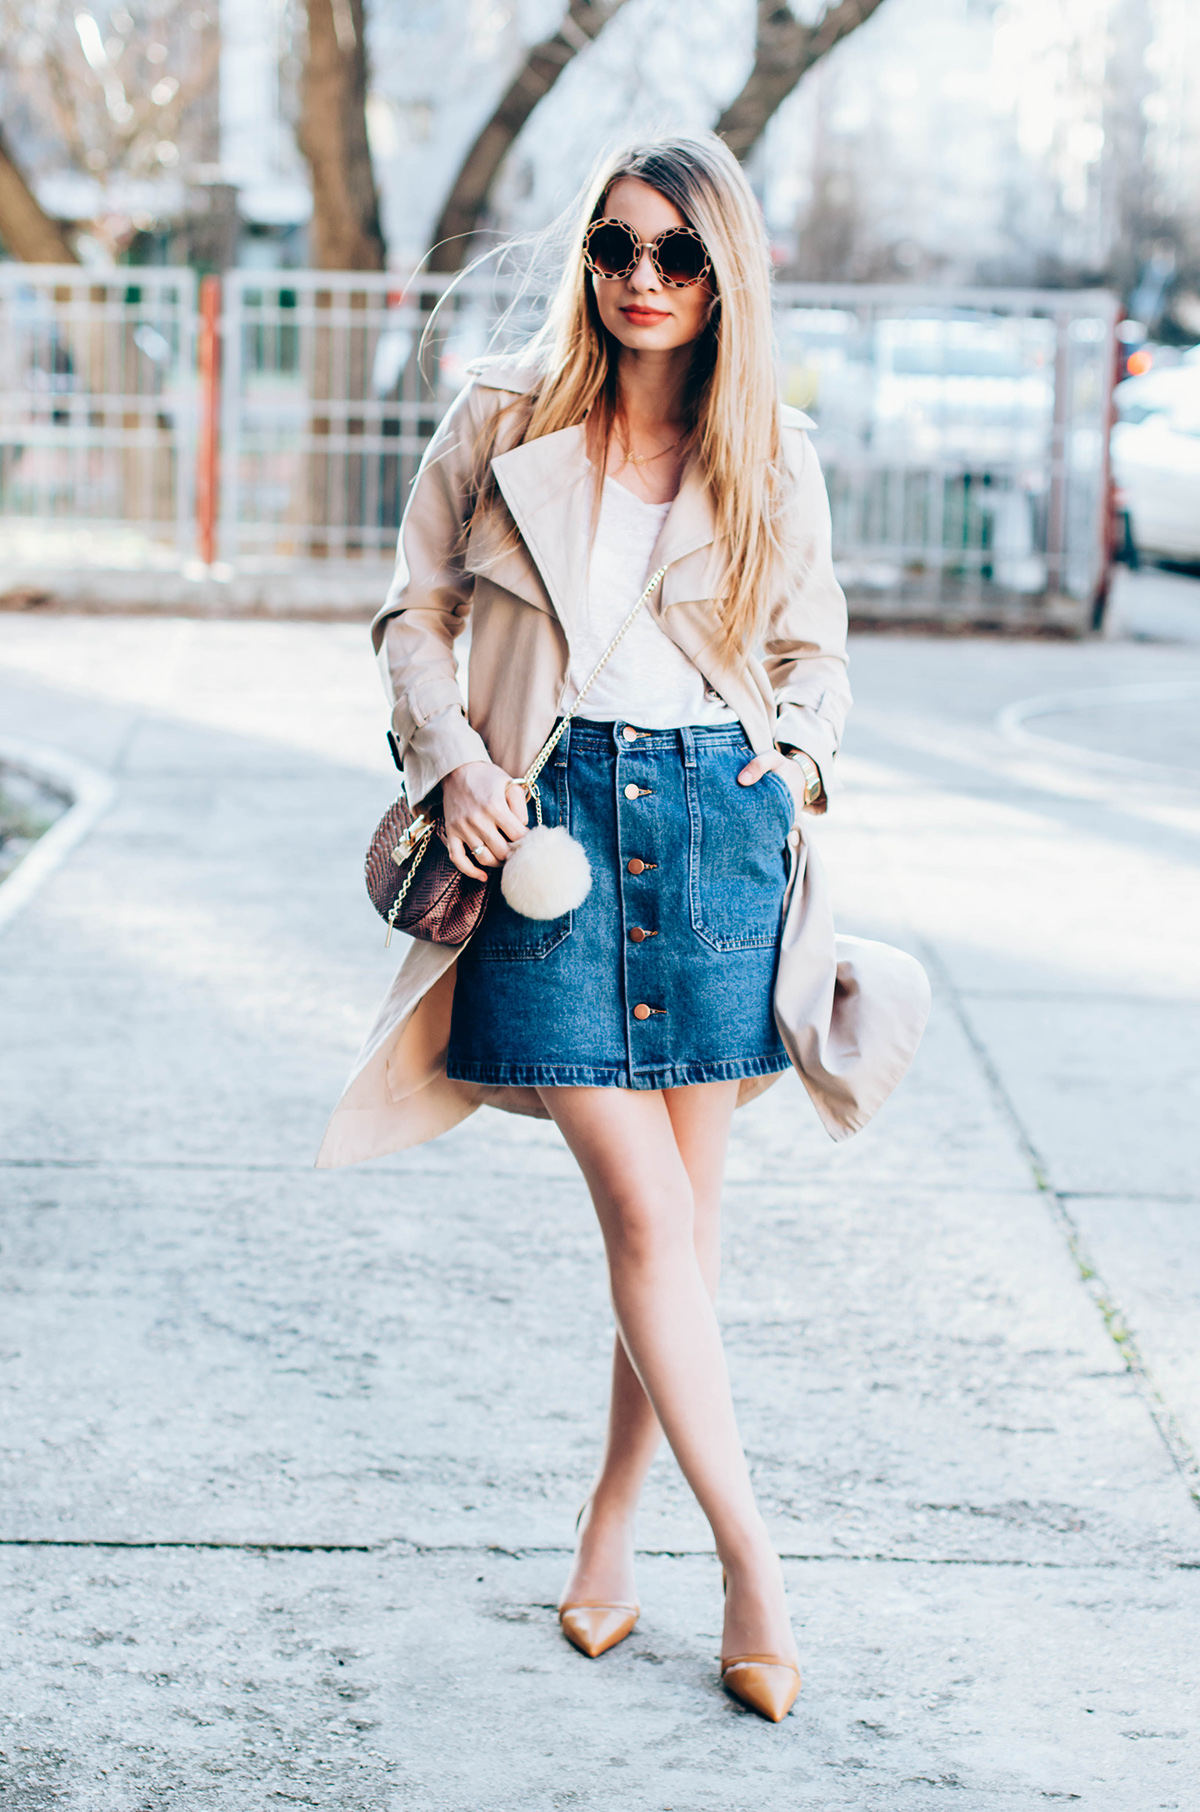 shein-buttoned-denim-skirt-trench-coat-outfit-snake-chloe-bag-fur-pom-pom-outfit (3)